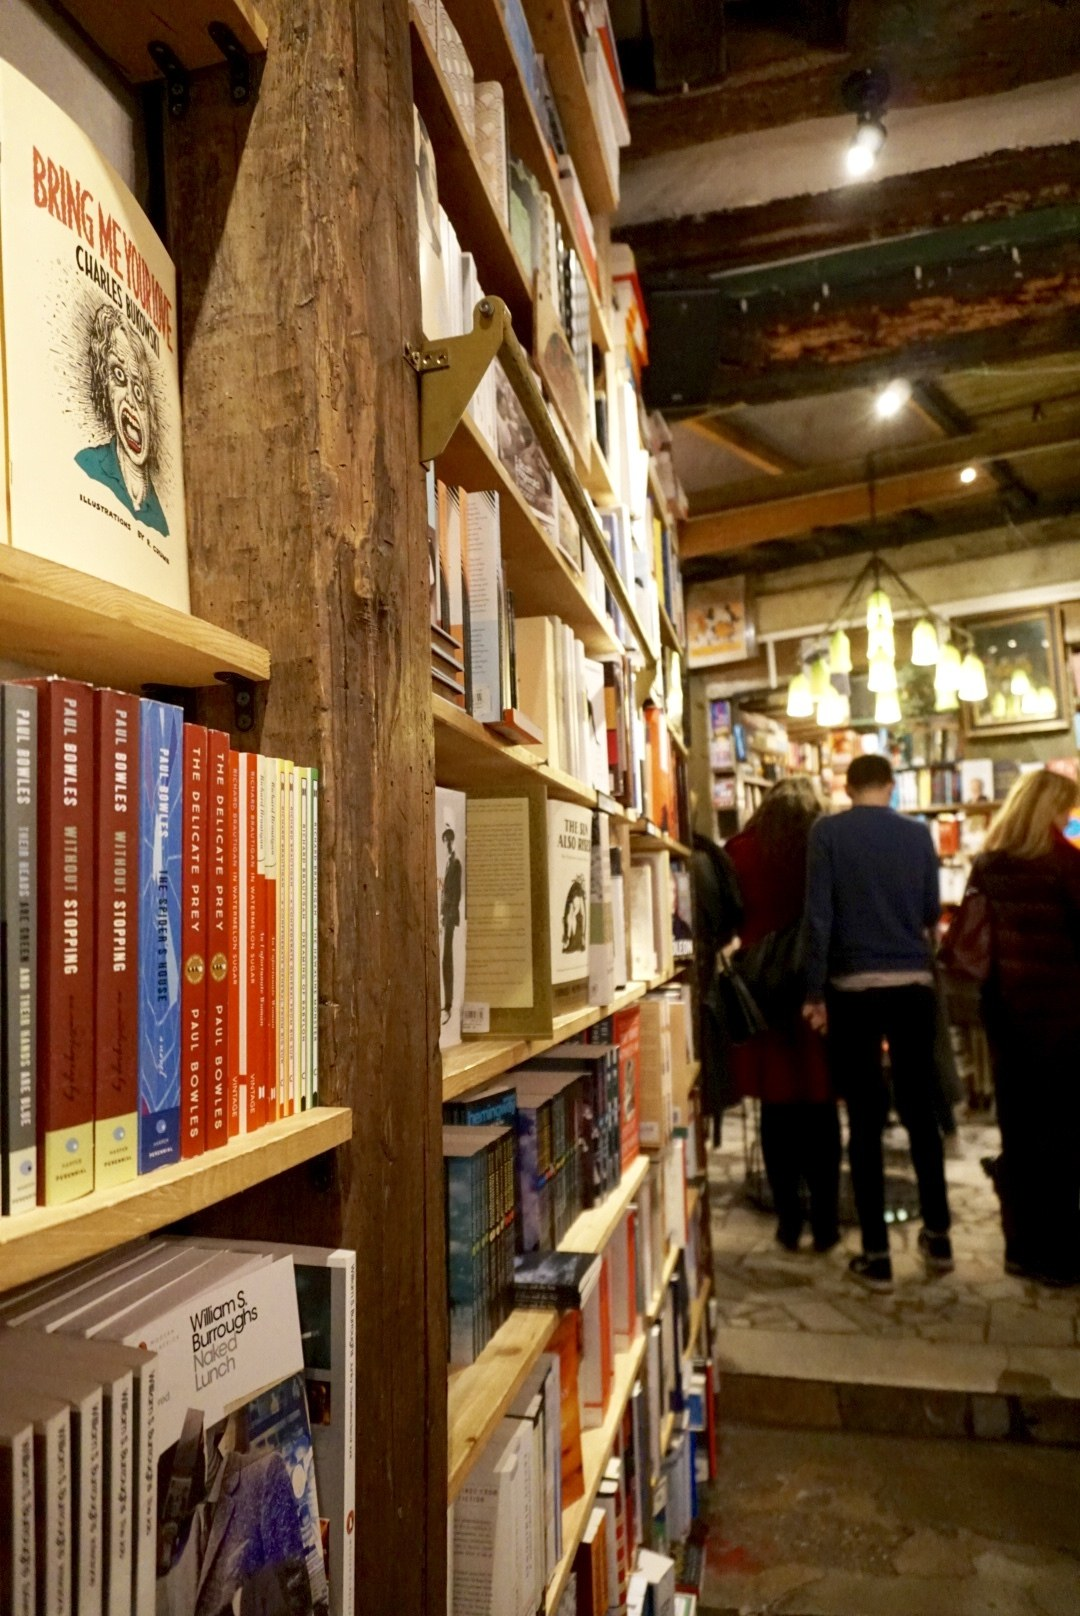 Shakespeare and company bookstore inside store shelves